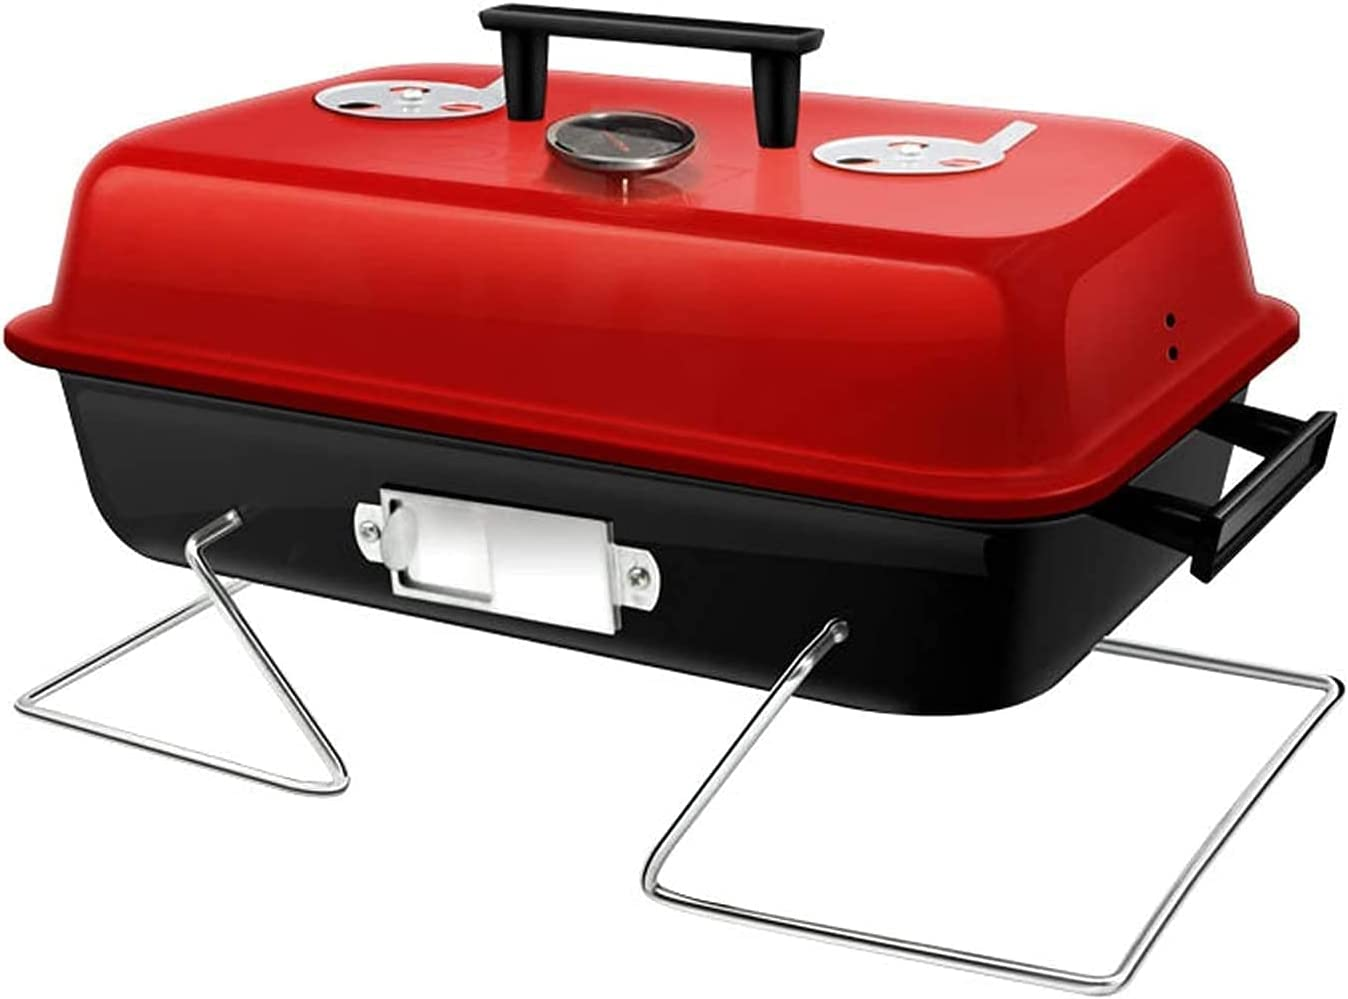 Max 55% OFF AACXRCR Barbecue tool set BBQ Charcoal Grill Cheap mail order specialty store Foldable